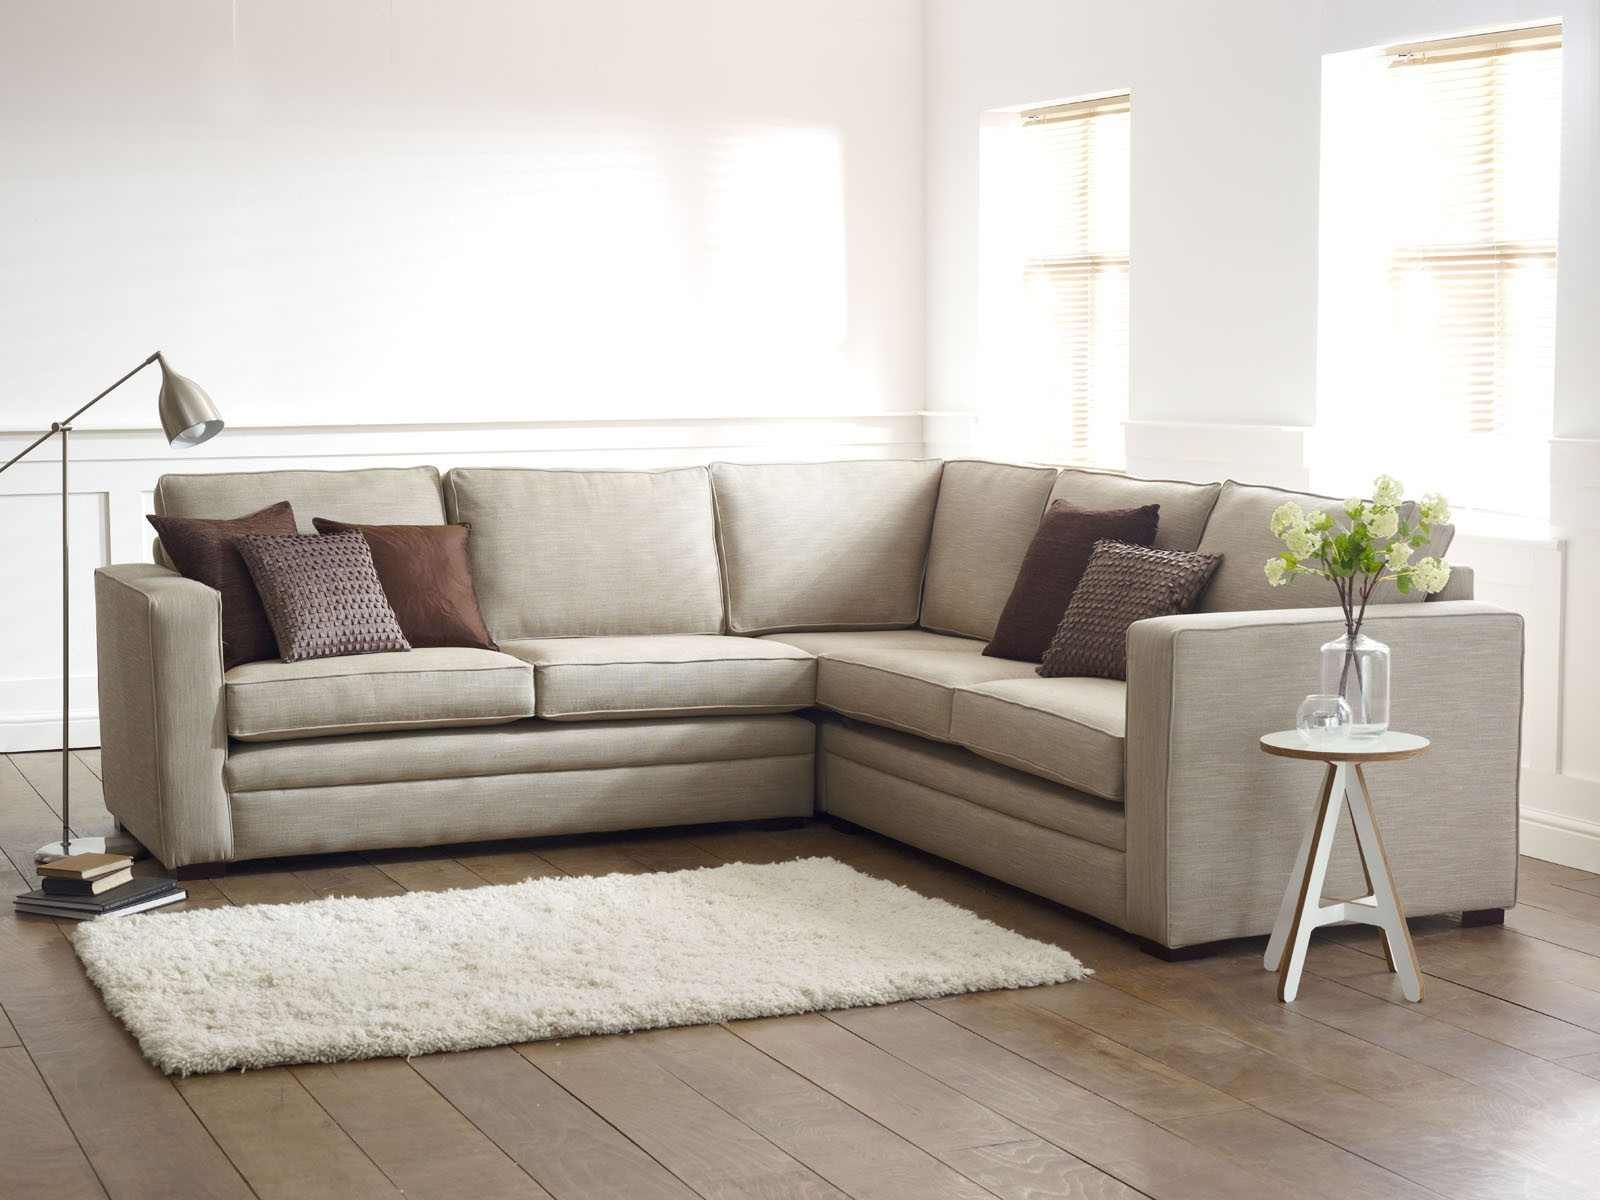 wonderful gray sectional l shaped sofa design ideas for living room furniture with low style d